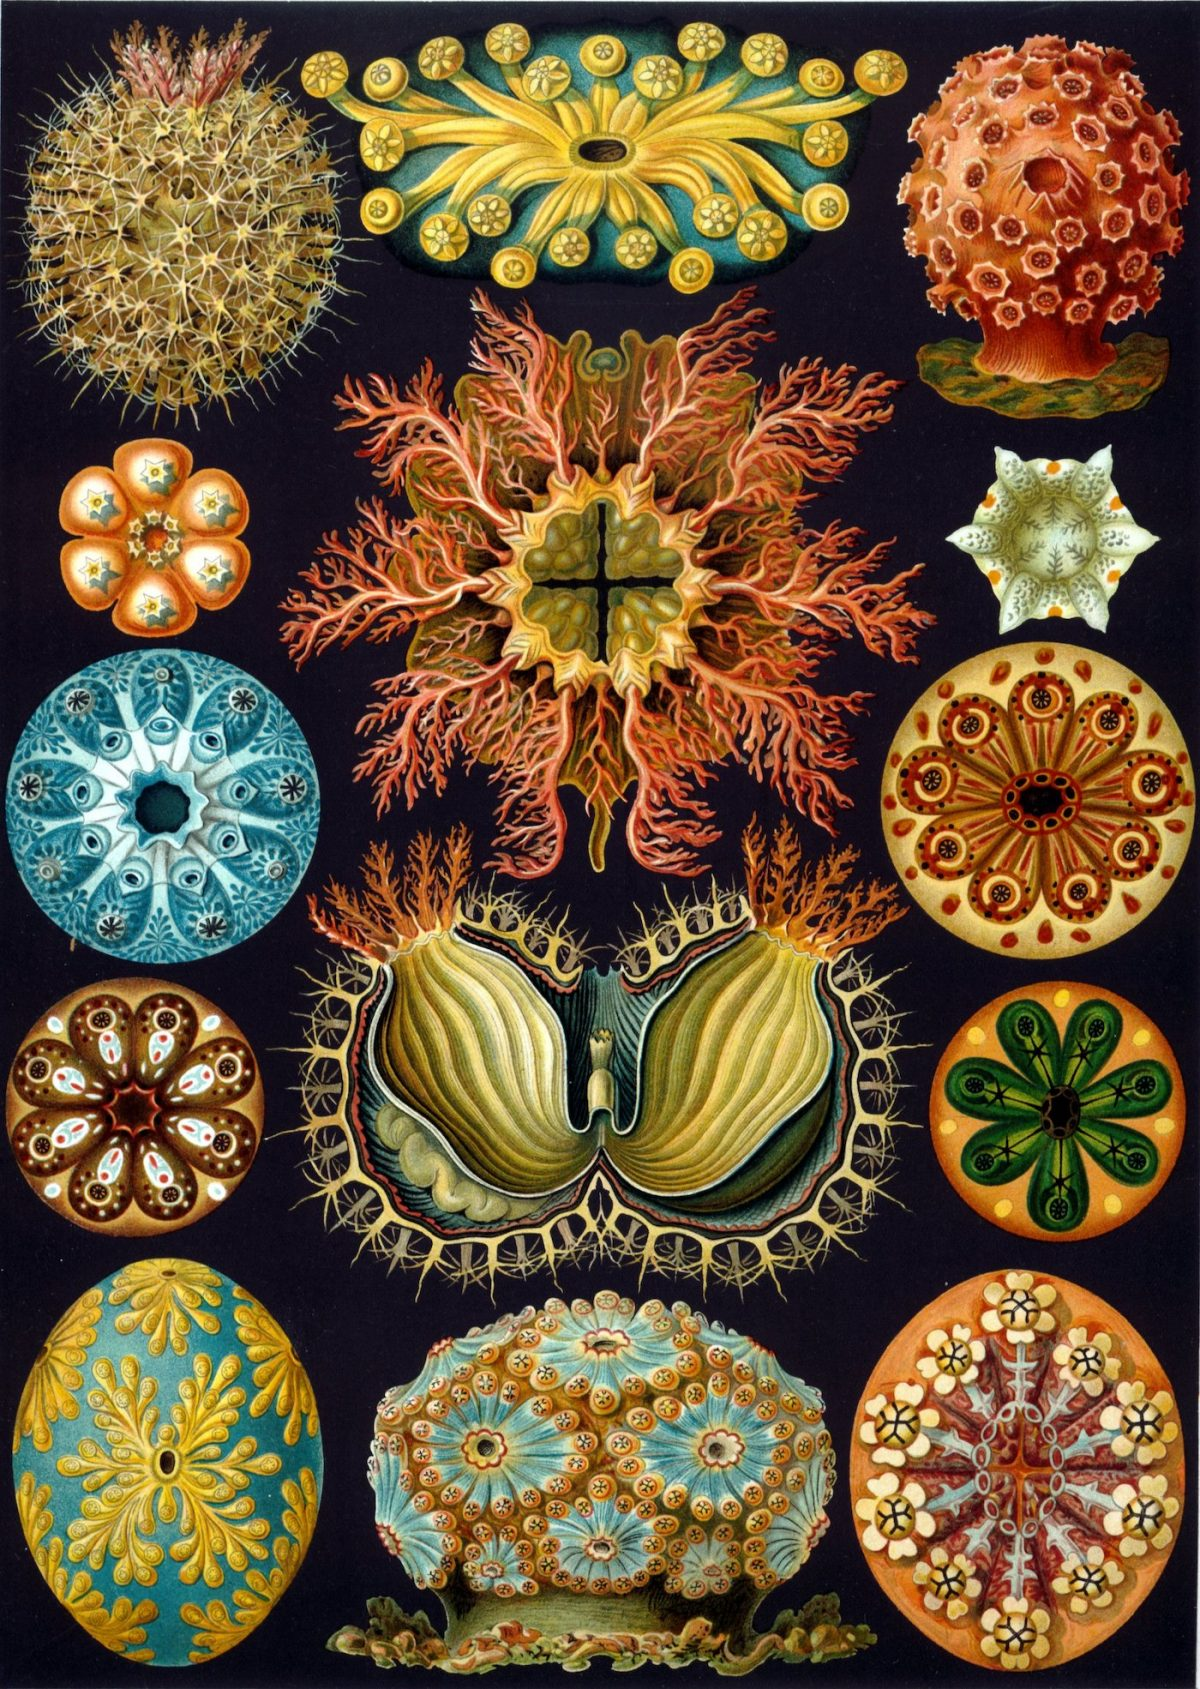 Ernst Haeckel, 'Ascidiae' , Plate 85 from  'Kunstformen der Natur (Artforms of Nature) , published 1904 (via The Library of Congress, Washington DC)